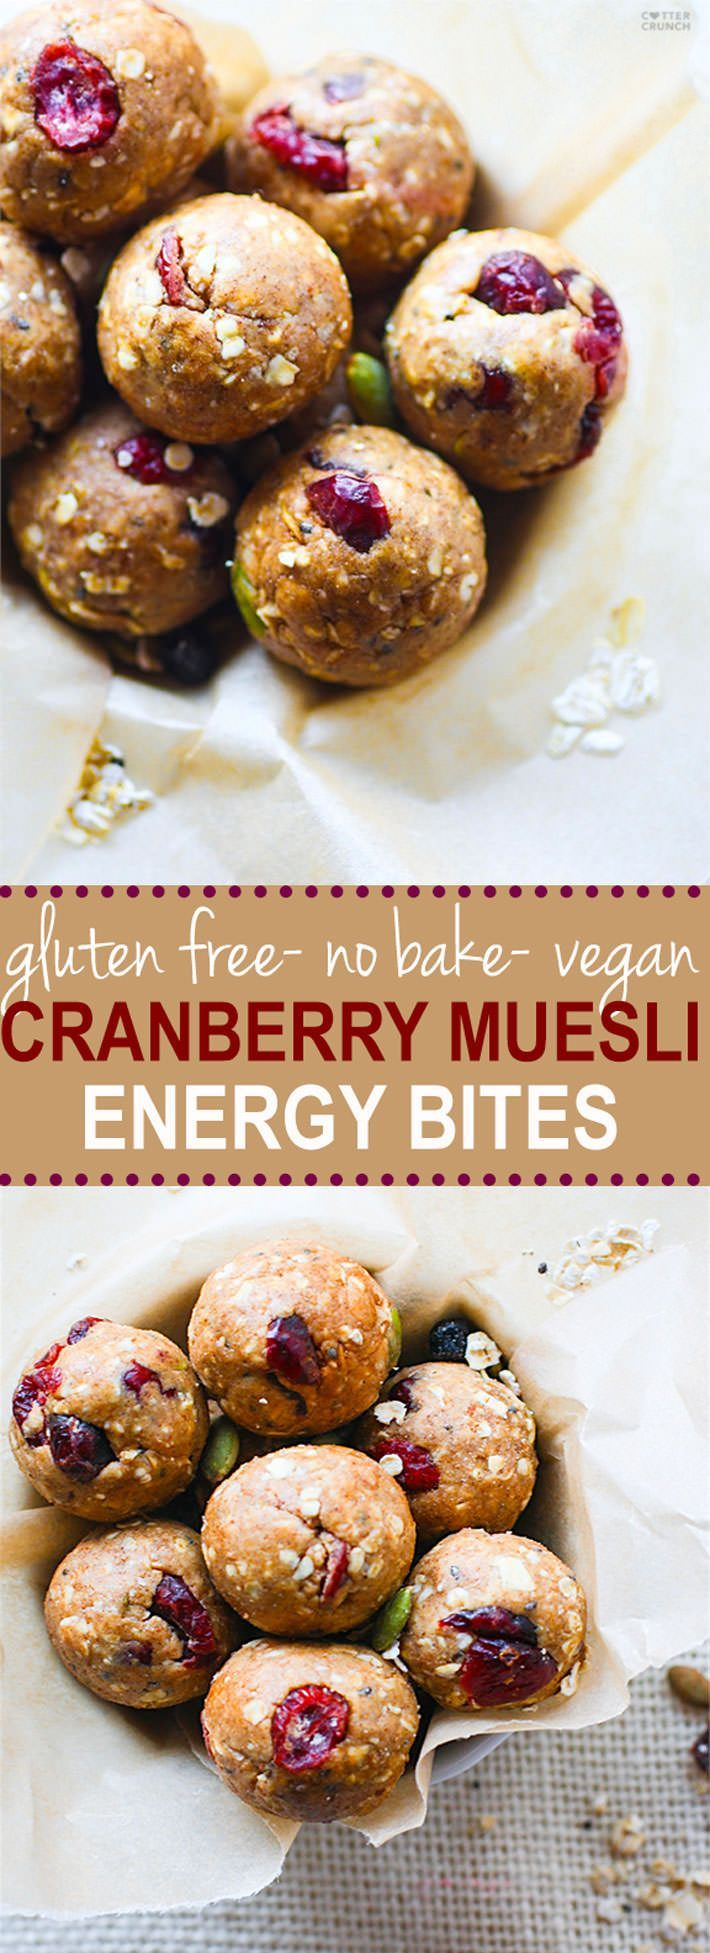 No Bake Gluten Free Muesli Energy Bites Recipe! This gluten free muesli bite recipe is super simple to make, vegan friendly, and a must make for healthy snacking. Homemade cranberry energy bites ready in no time!